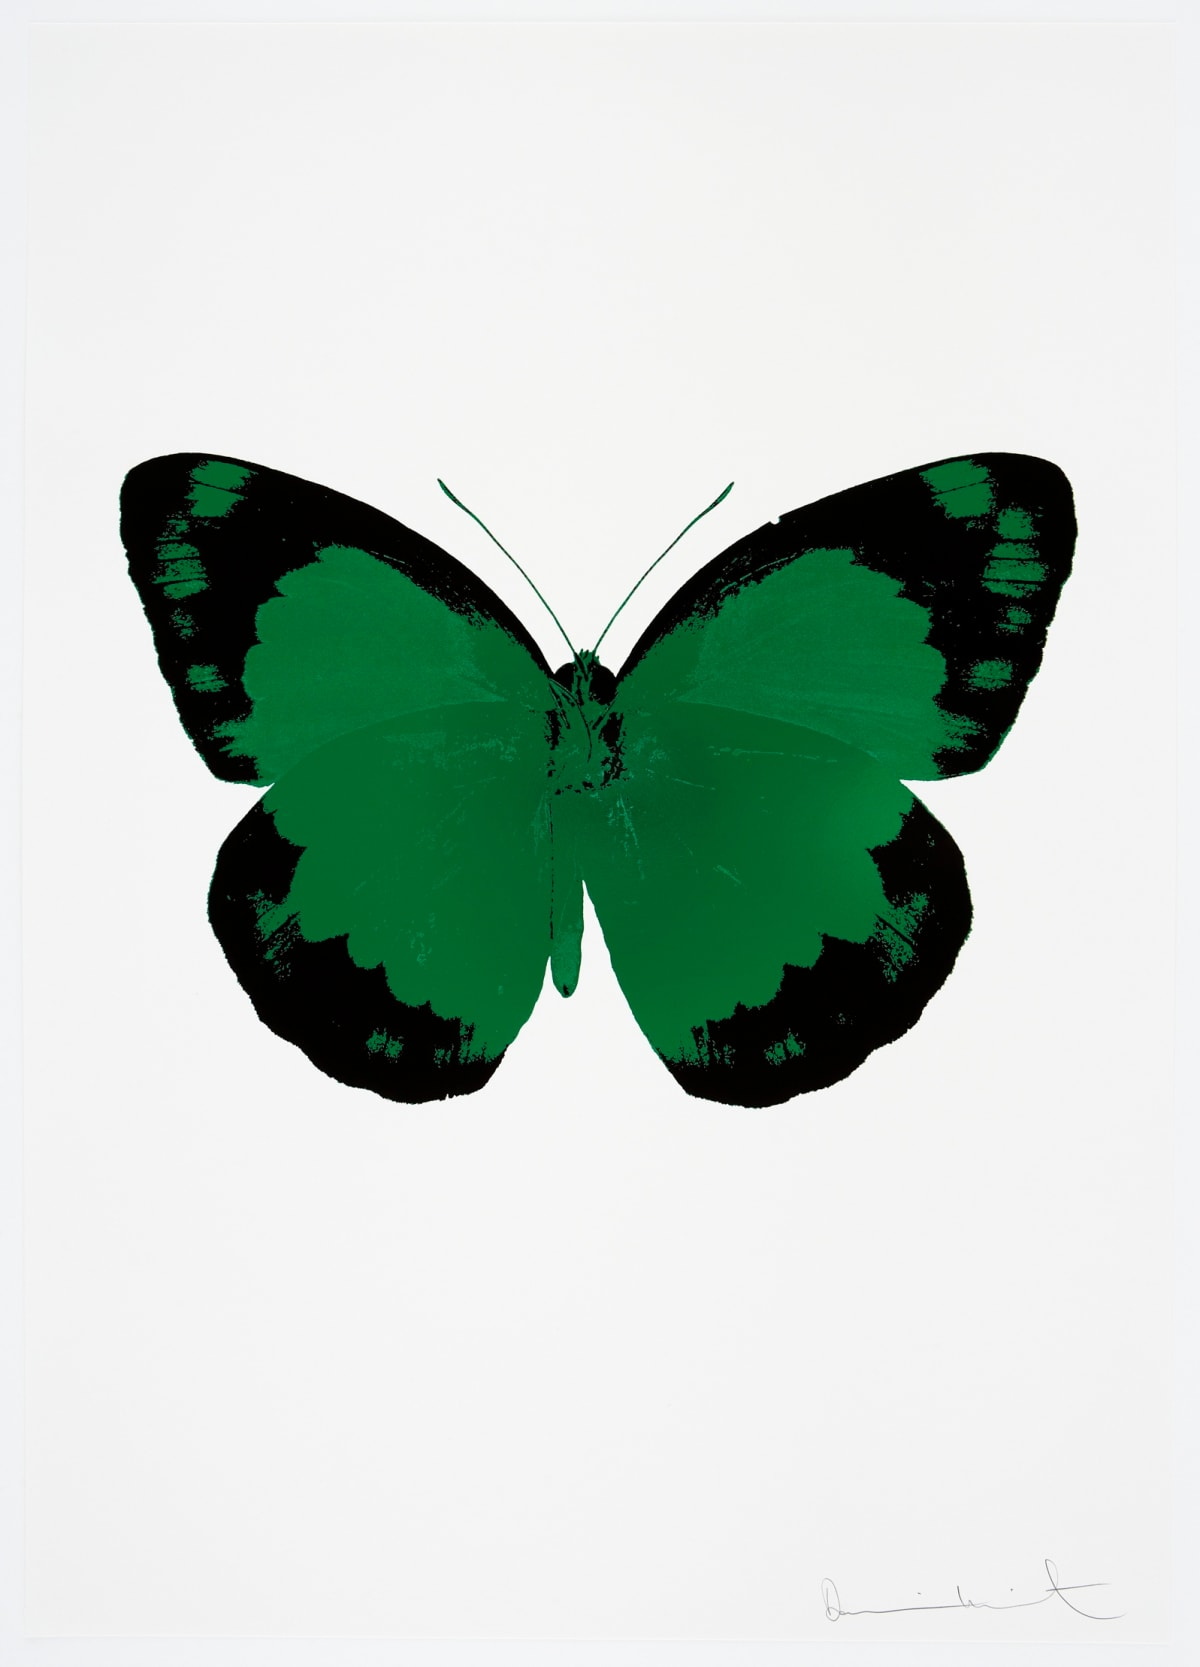 Damien Hirst The Souls II - Emerald Green/Raven Black/Blind Impression, 2010 2 colour foil block on 300gsm Arches 88 archival paper. Signed and numbered. Published by Paul Stolper and Other Criteria 72 x 51cm OC7836 / 658-19 Edition of 15